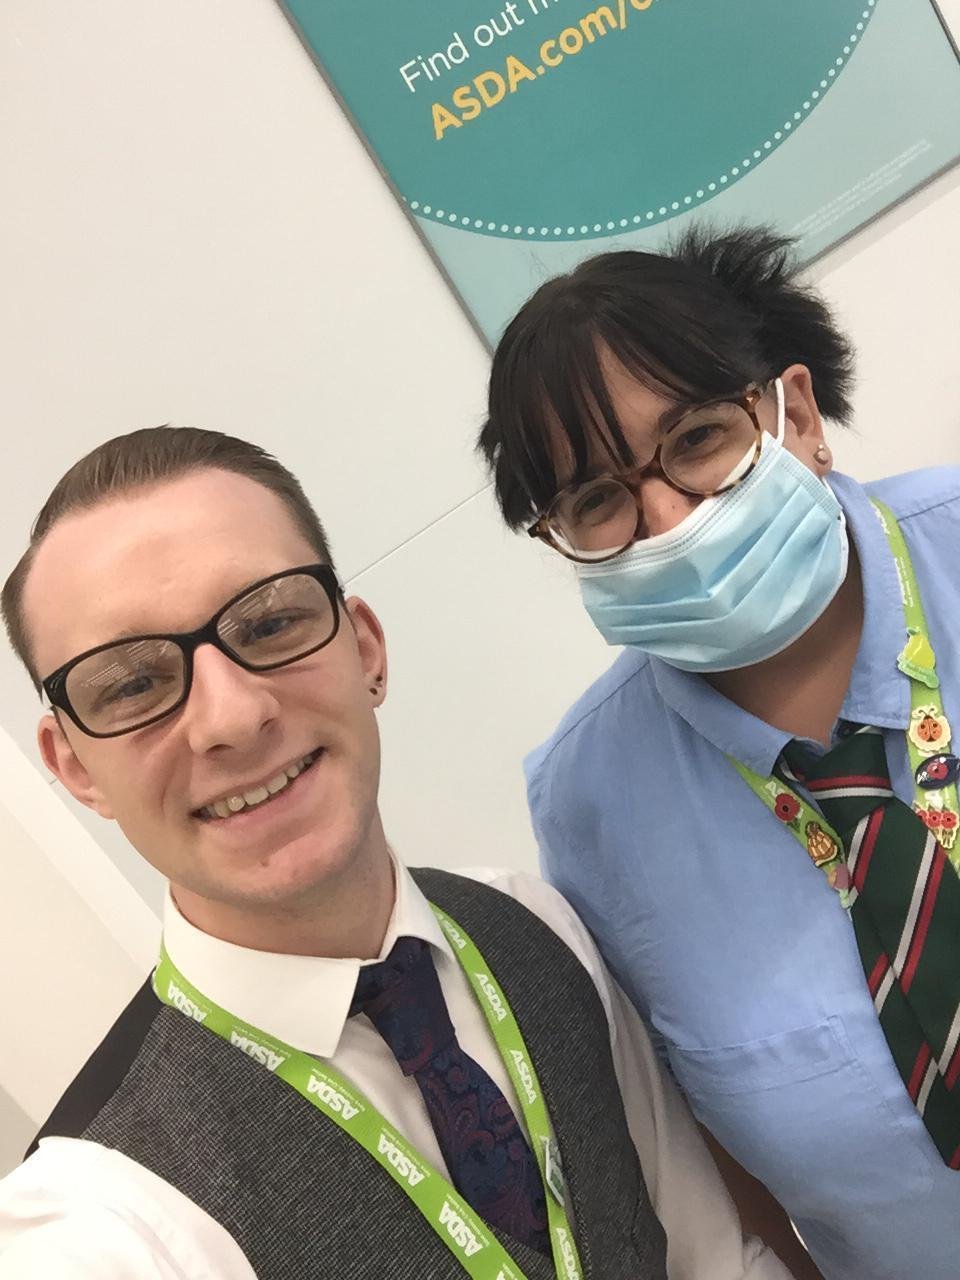 Perfect DayStaff at worcester store joining in on perfect day | Asda Worcester